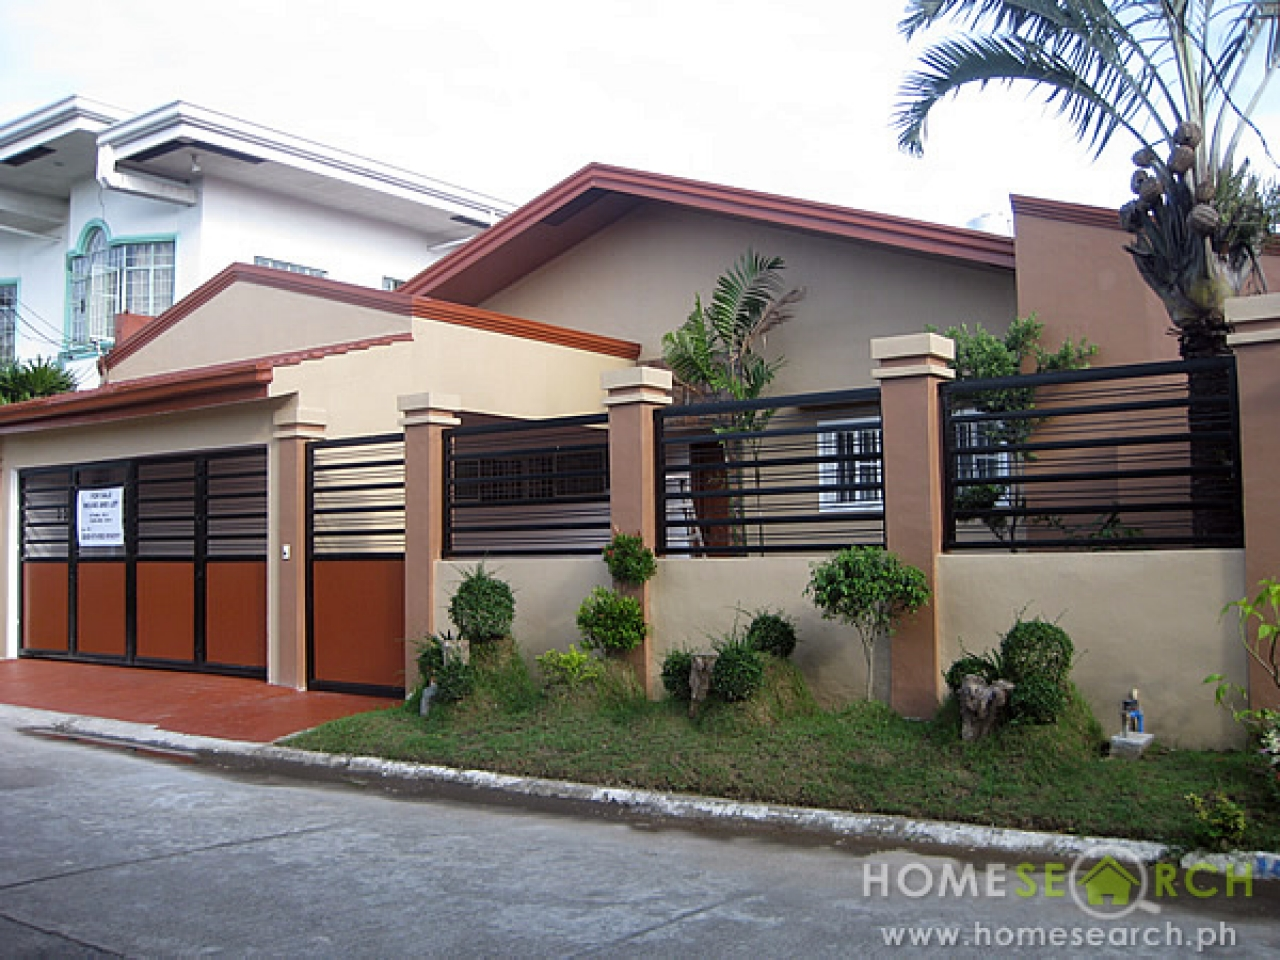 Simple bungalow house design philippines philippine Simple bungalow house plans